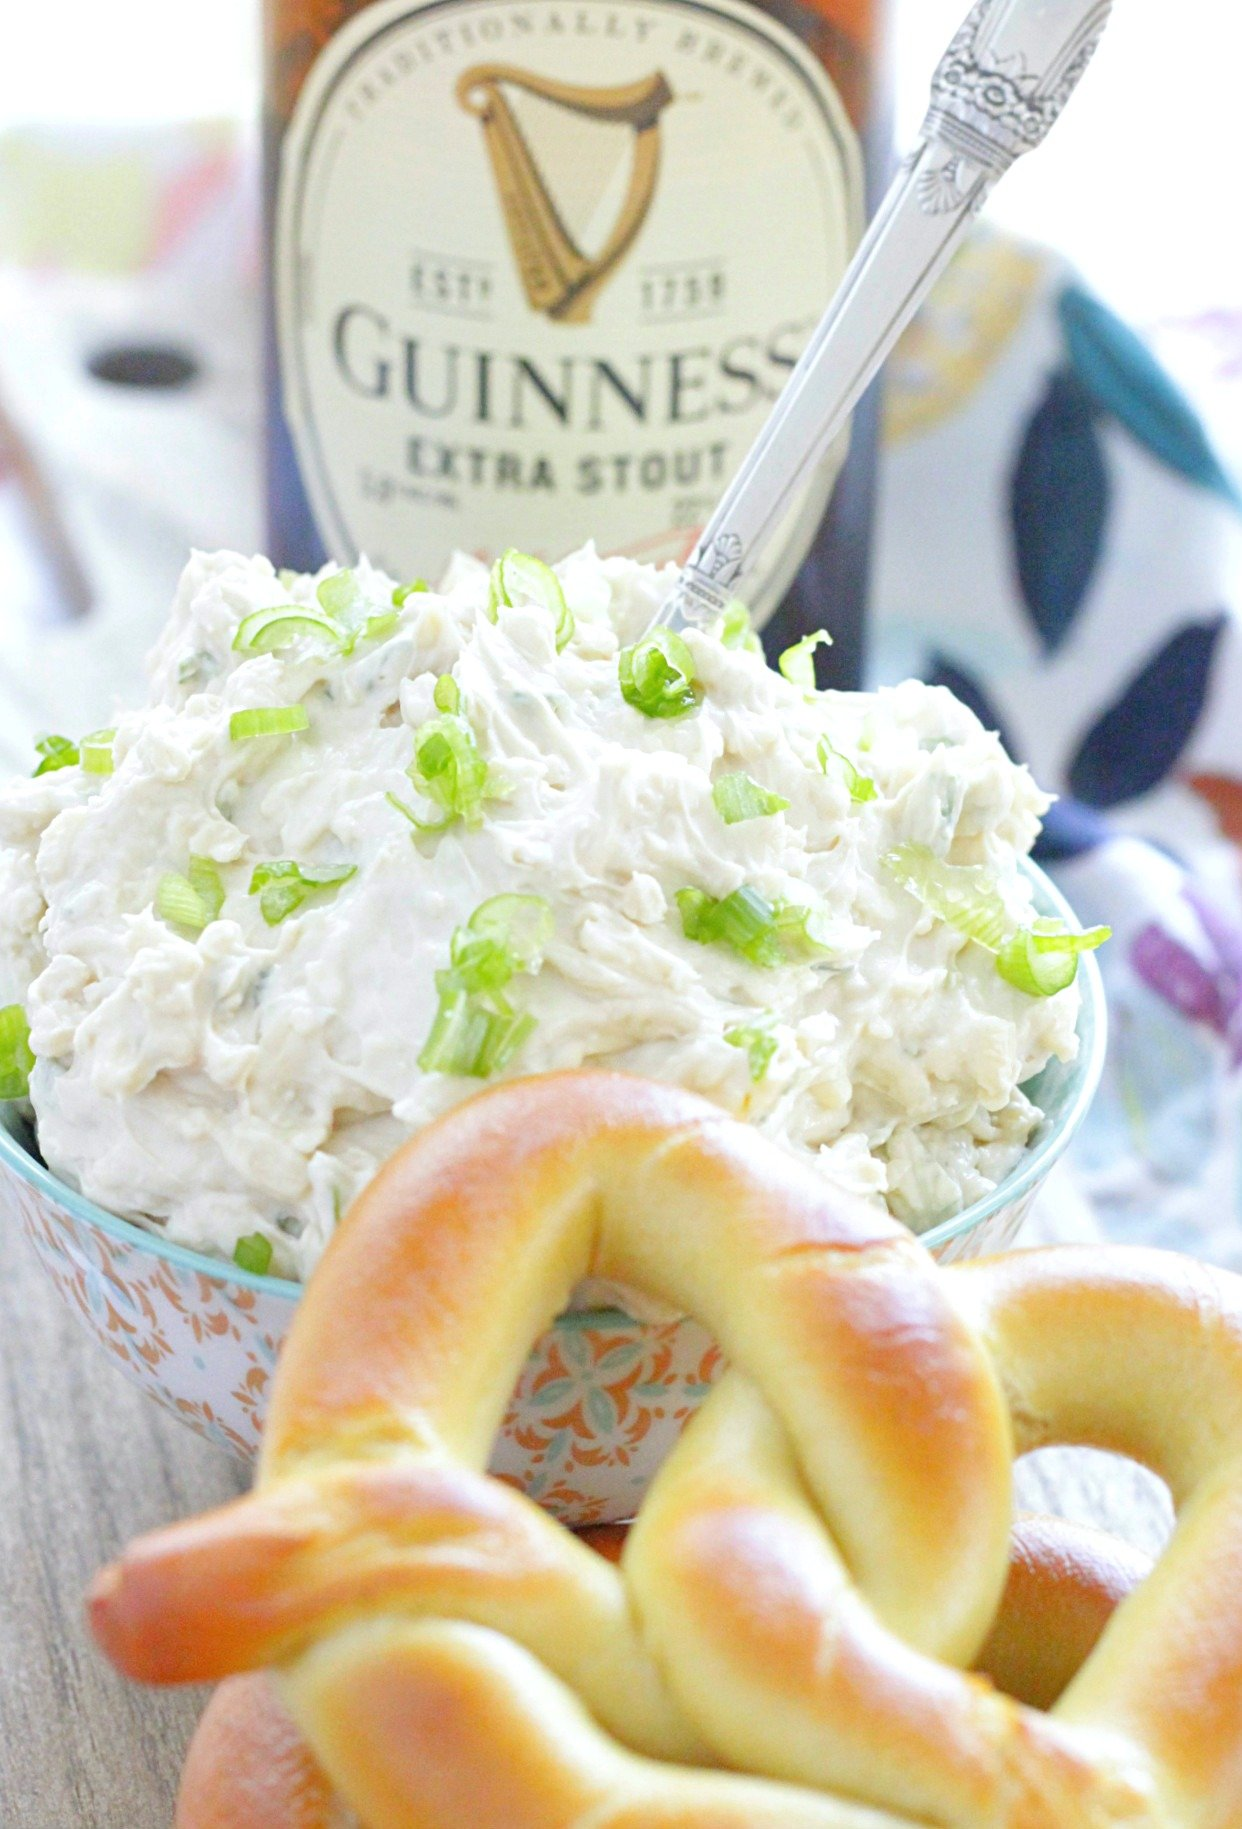 guinness cheddar dip pictured with a bottle of Guinness